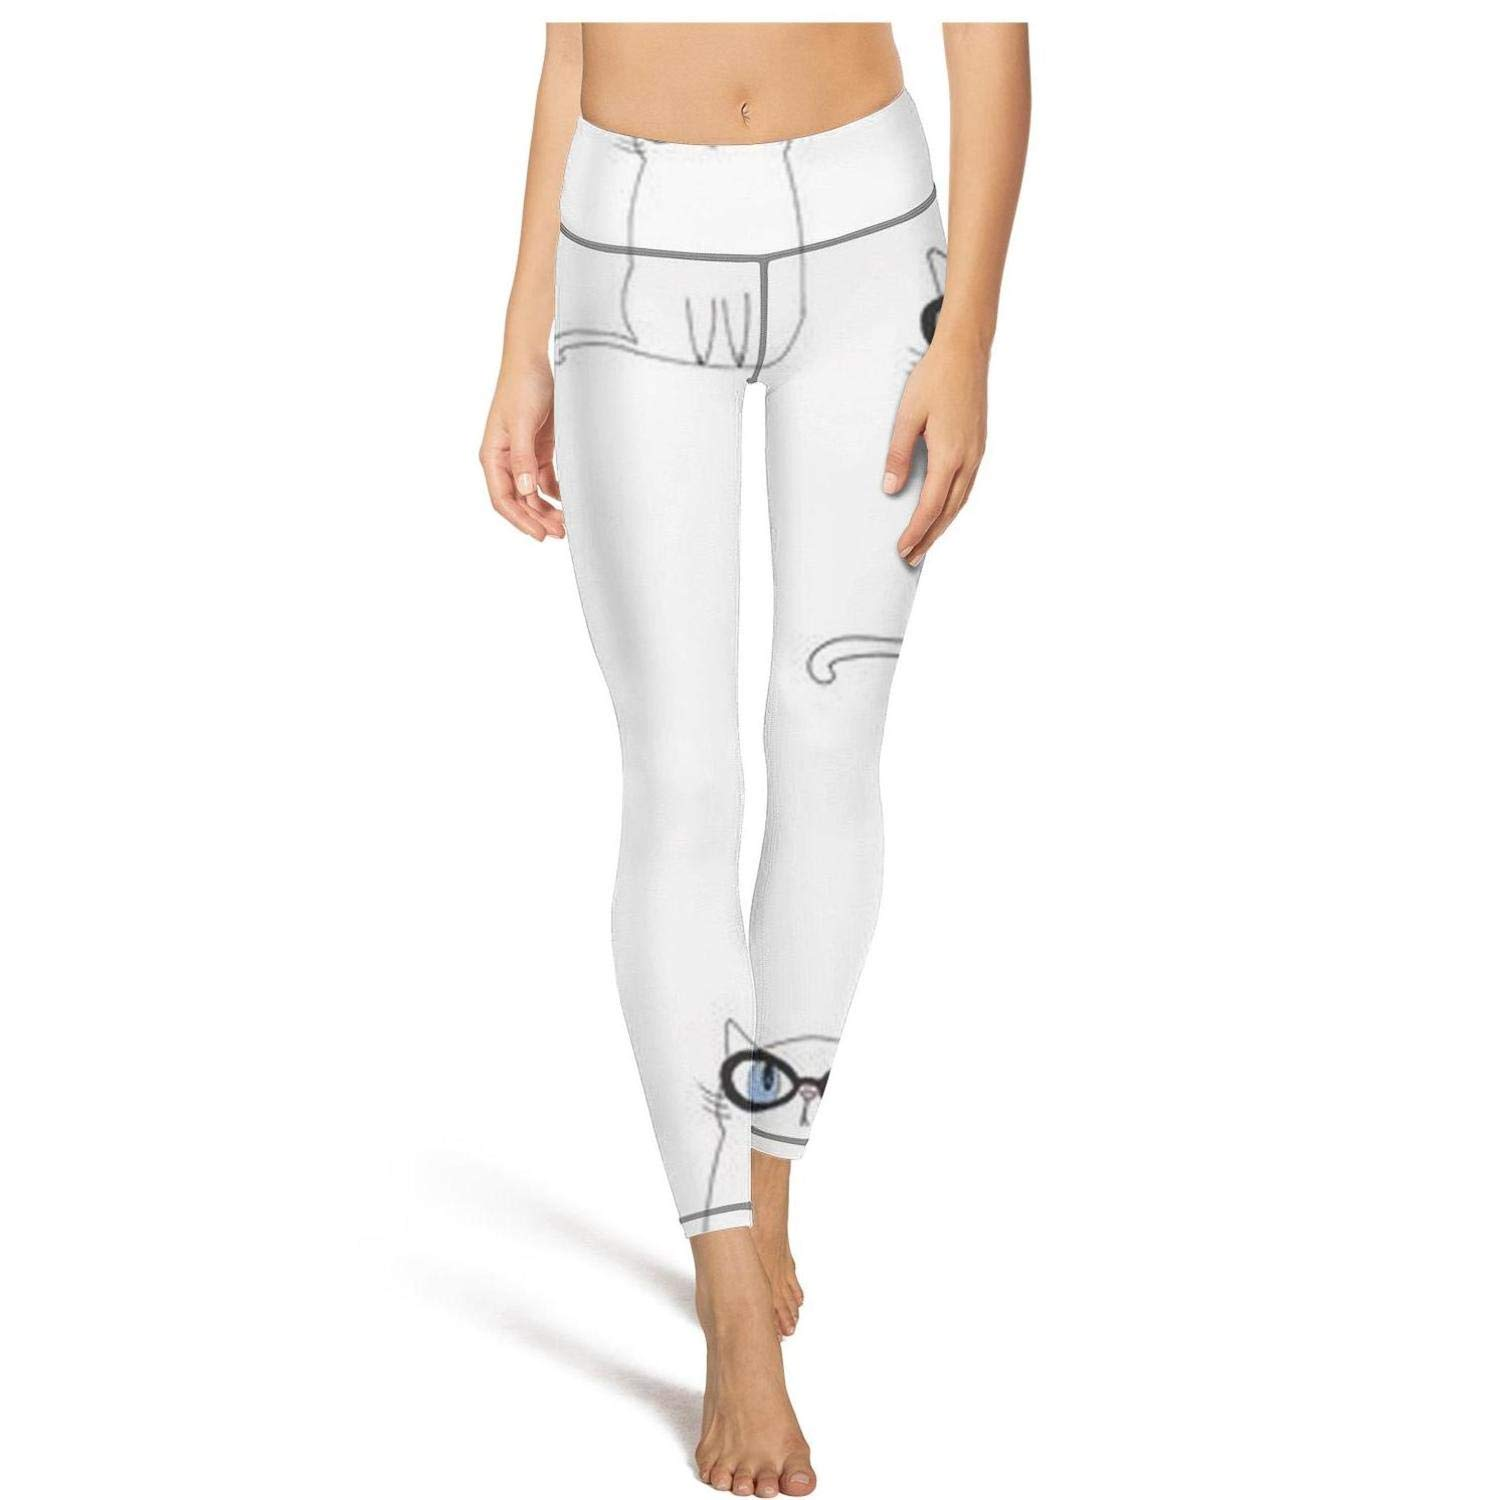 Muexxxv Woman cat with Glasses White Yoga Pants Leggings Runners Sexy Outdoor